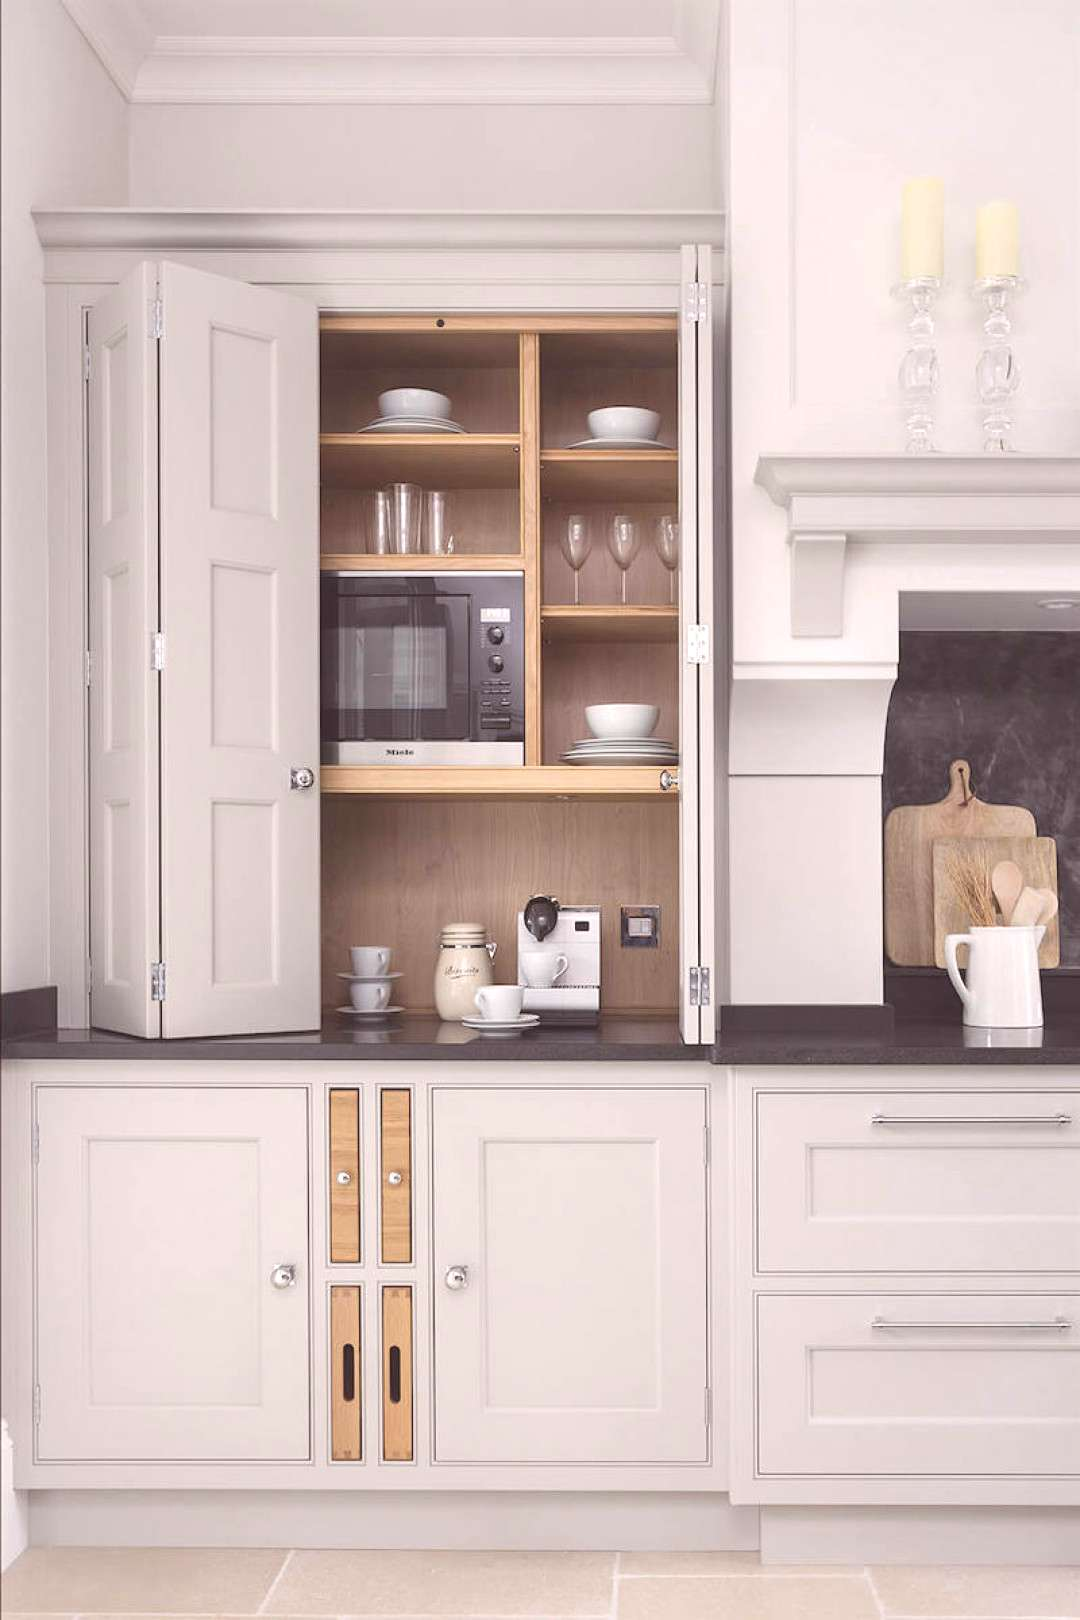 12 Farrow and Ball Kitchen Cabinet Colors For The Perfect English Kitchen - Blue kitchen cabinets -